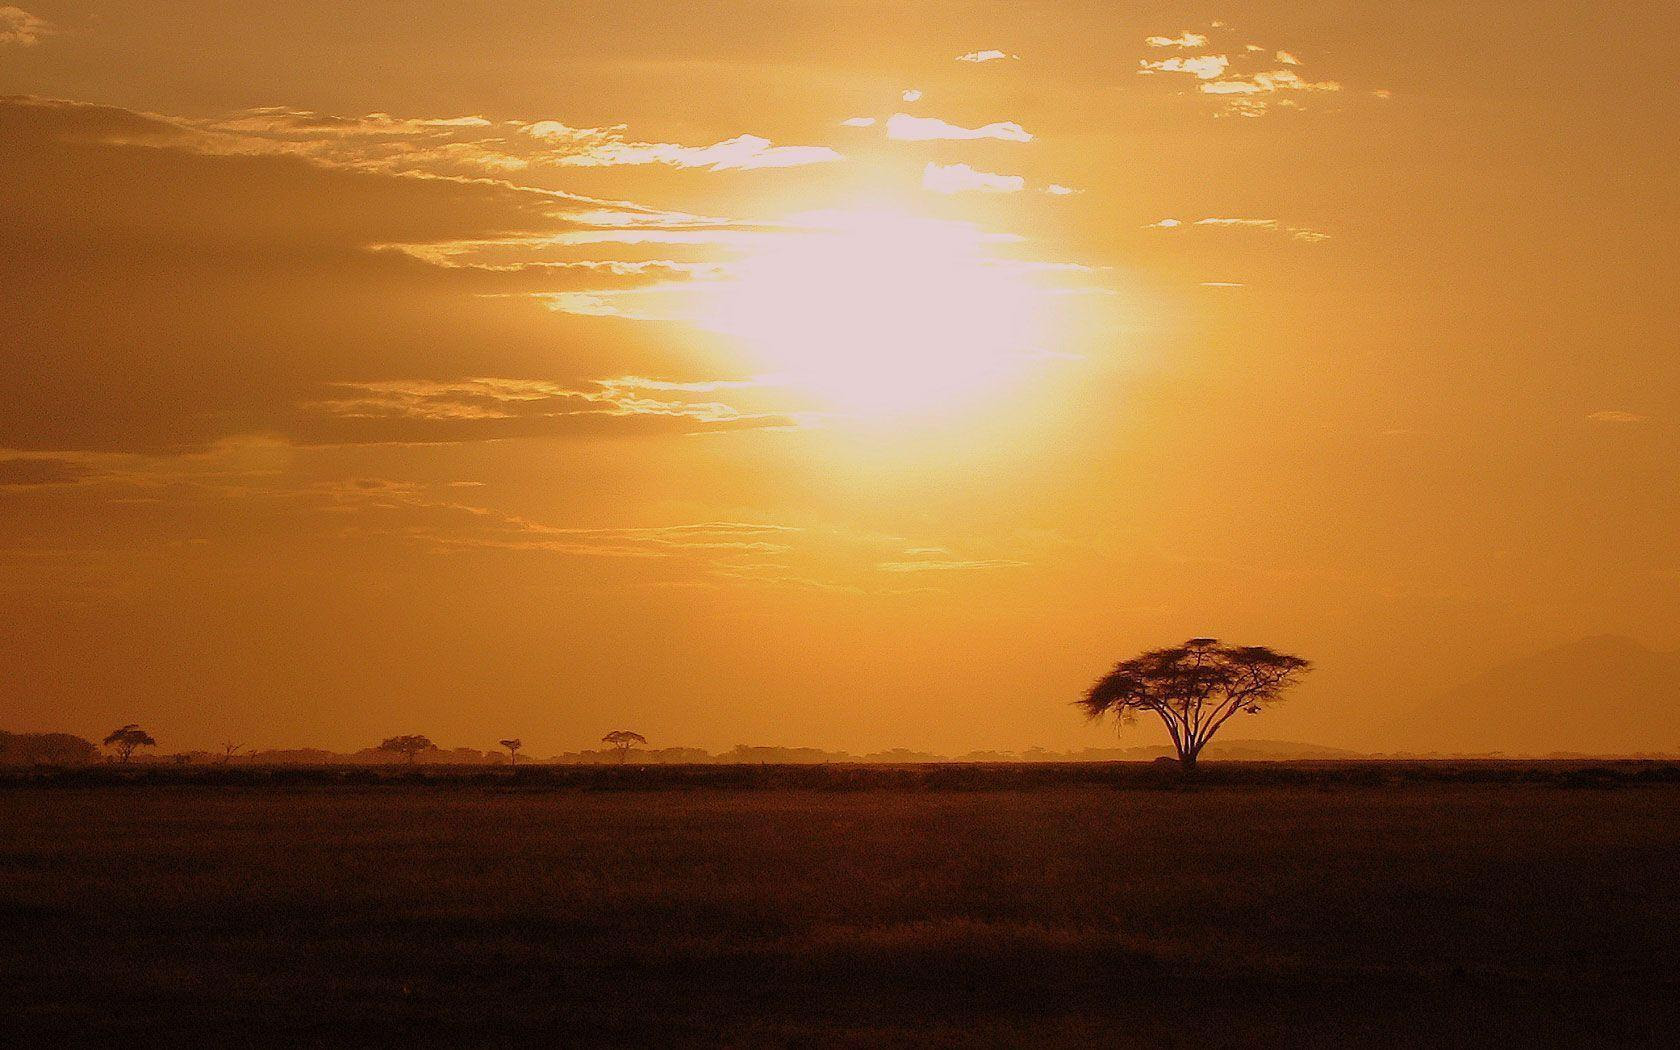 Africa Wallpapers - Wallpaper Cave